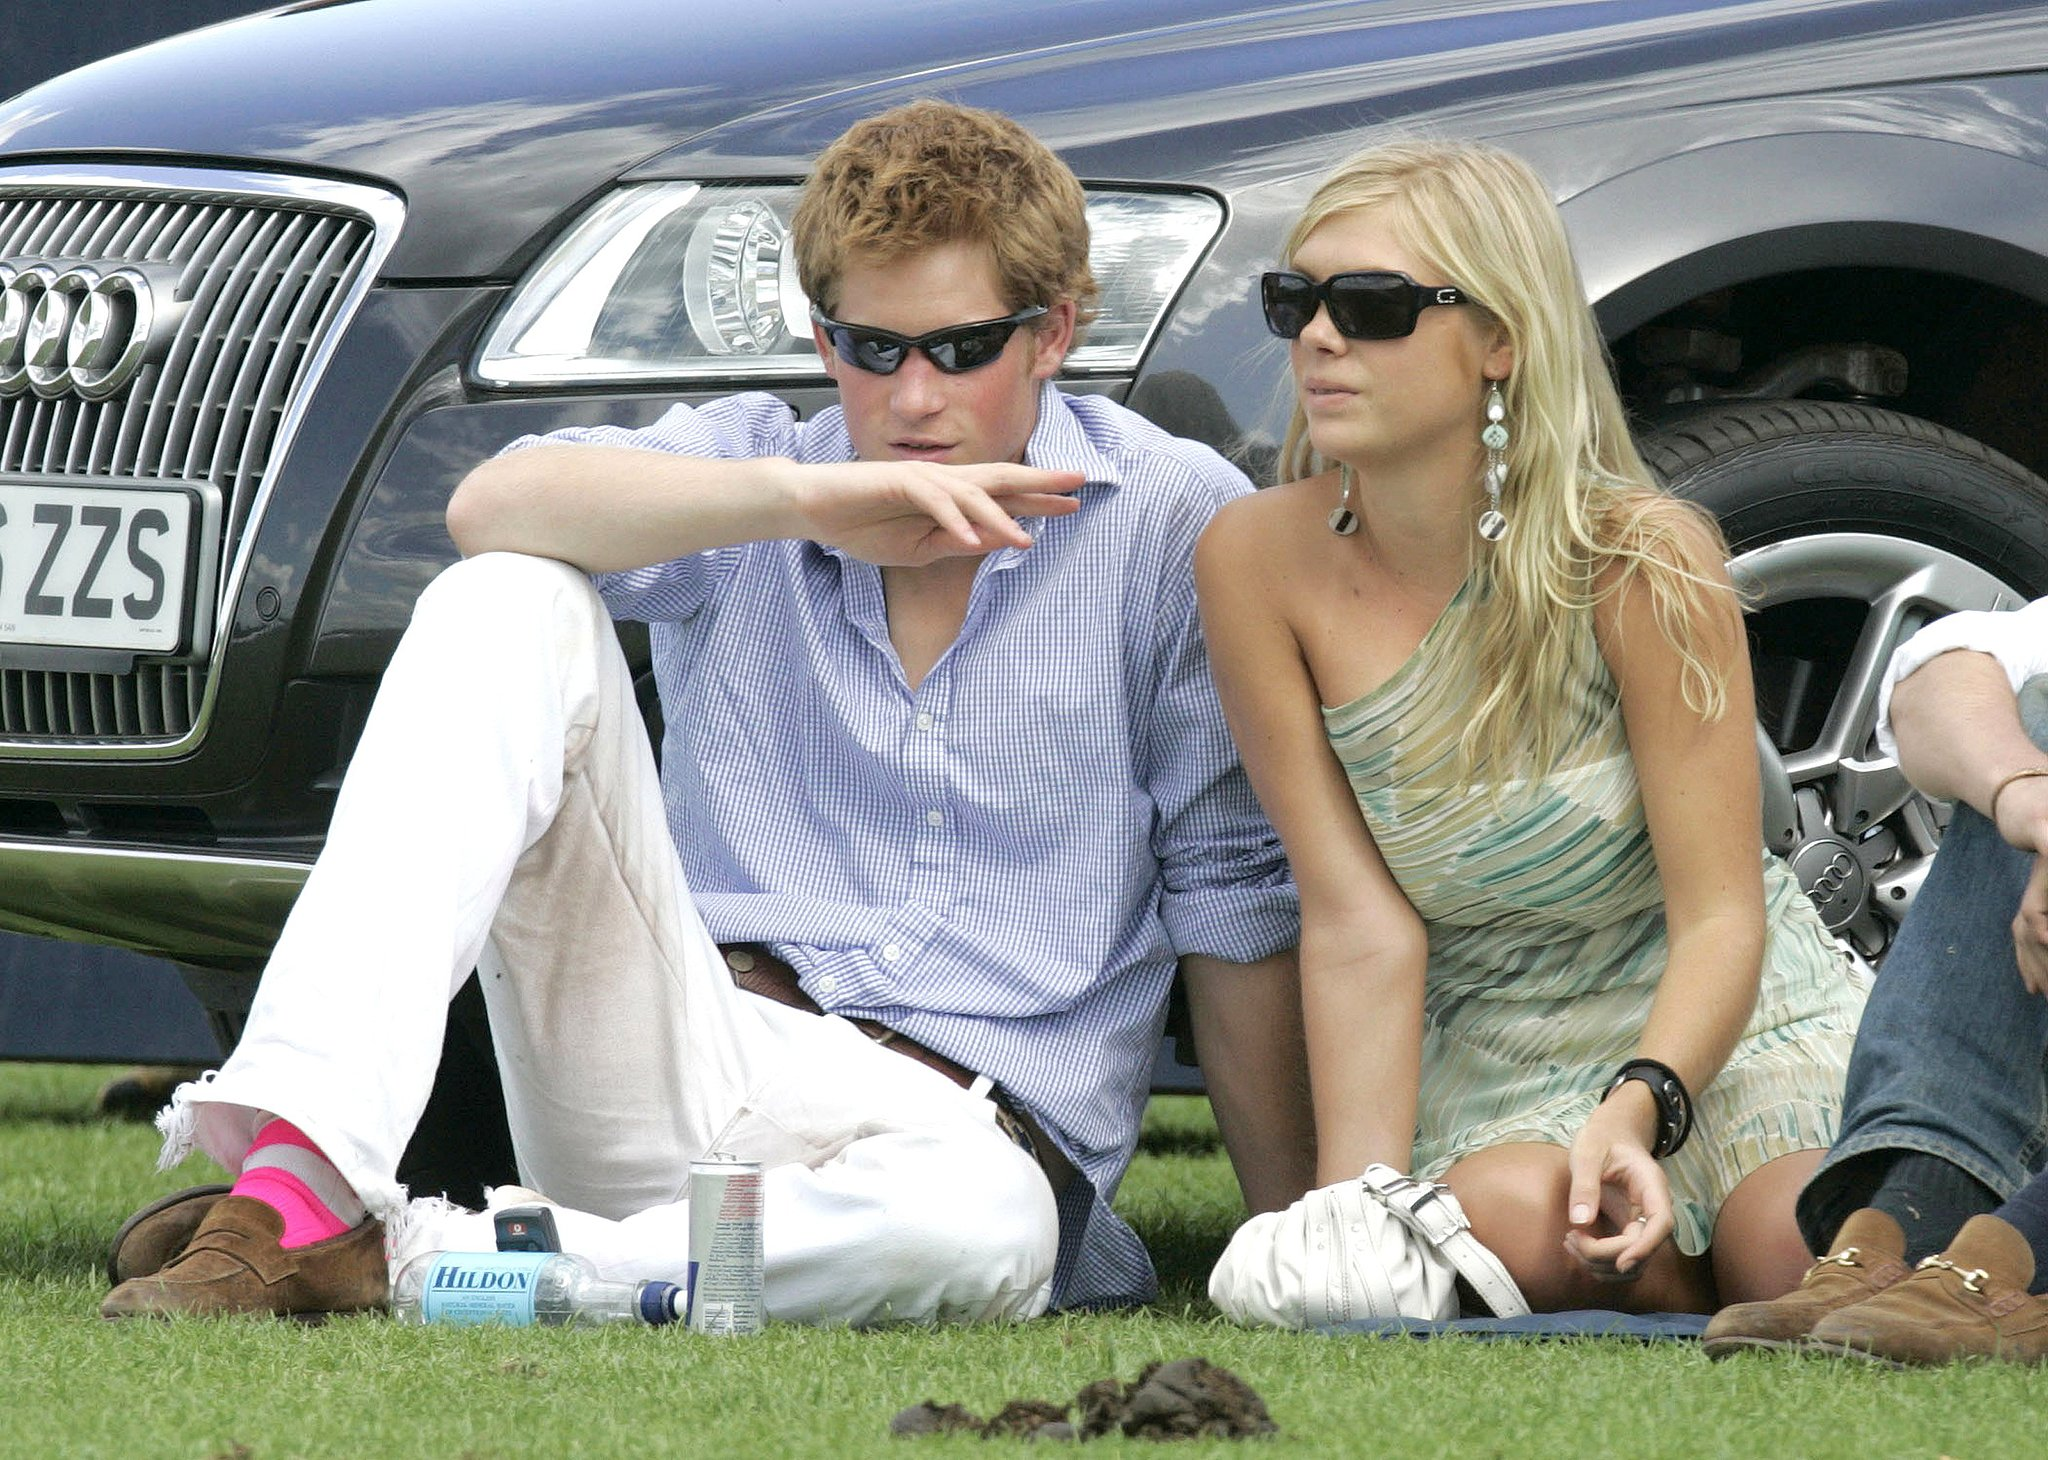 Prince Harry hung out with his girlfriend at the time, Chelsy Davy, during a 2006 polo match in England.